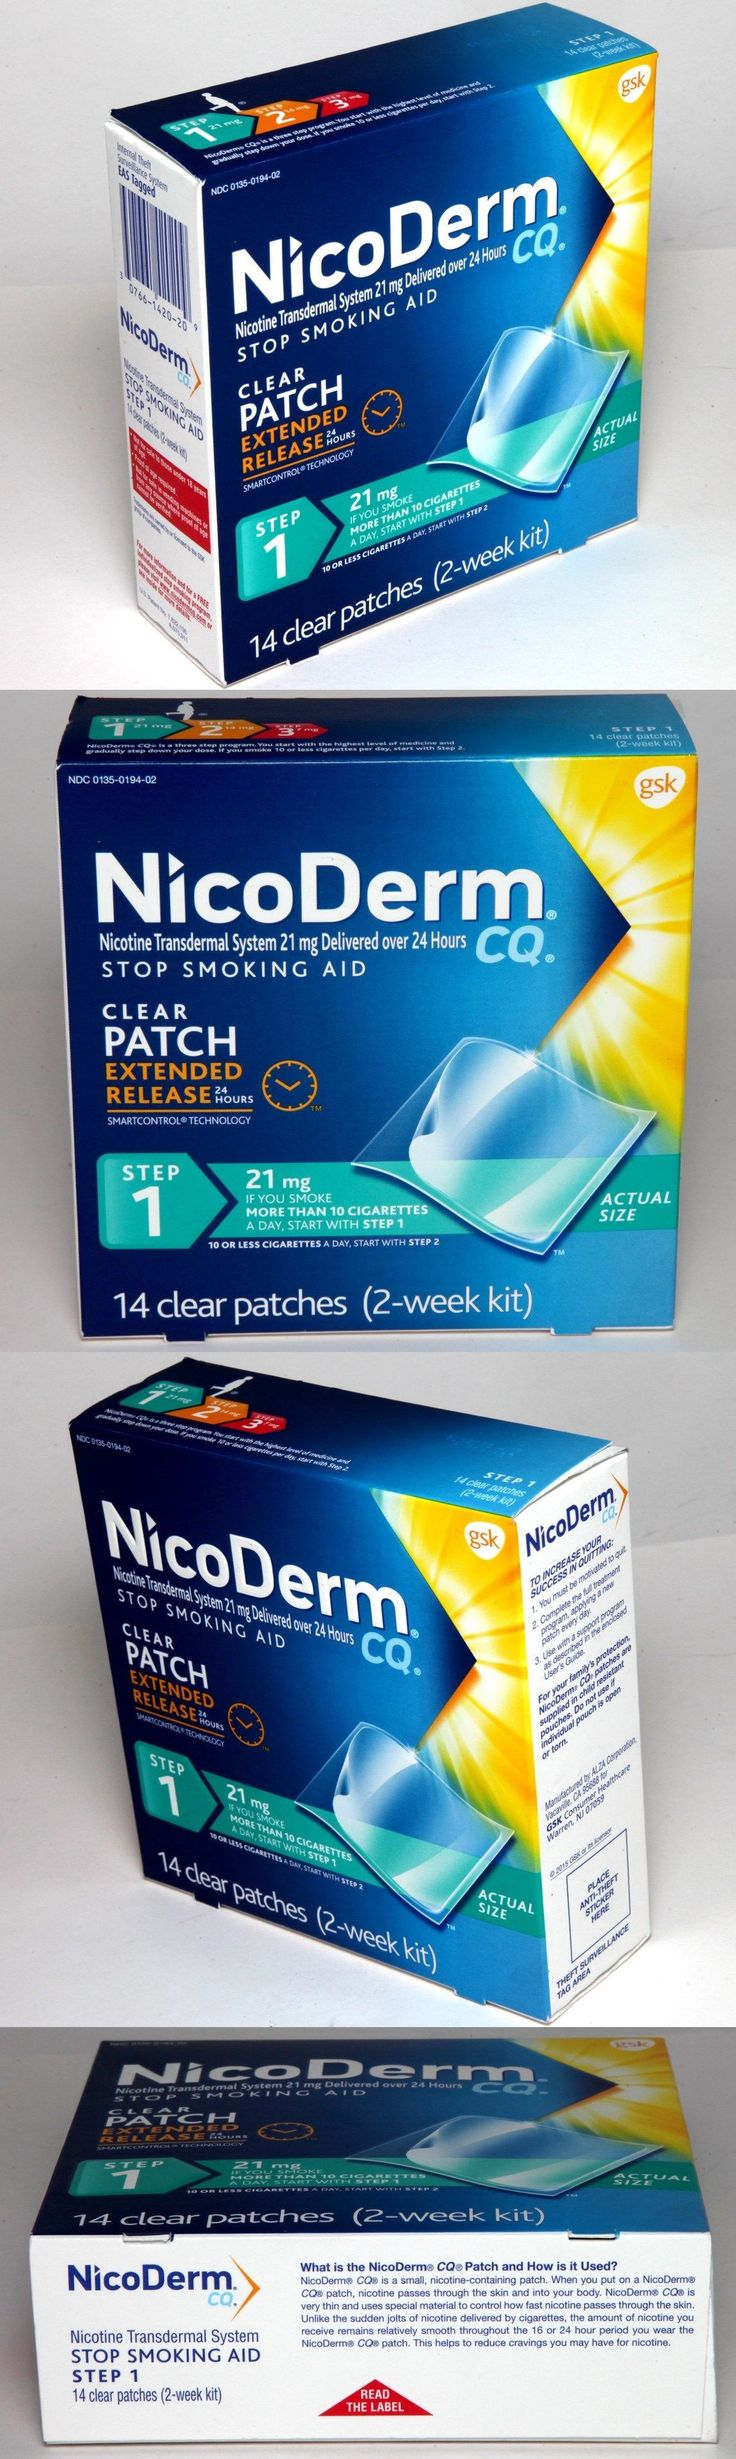 Patches: Nicoderm Cq Nicotine Patch Step 1 Transdermal 21 Mg Stop Smoking Aid 2 Week Kit -> BUY IT NOW ONLY: $32.99 on eBay!